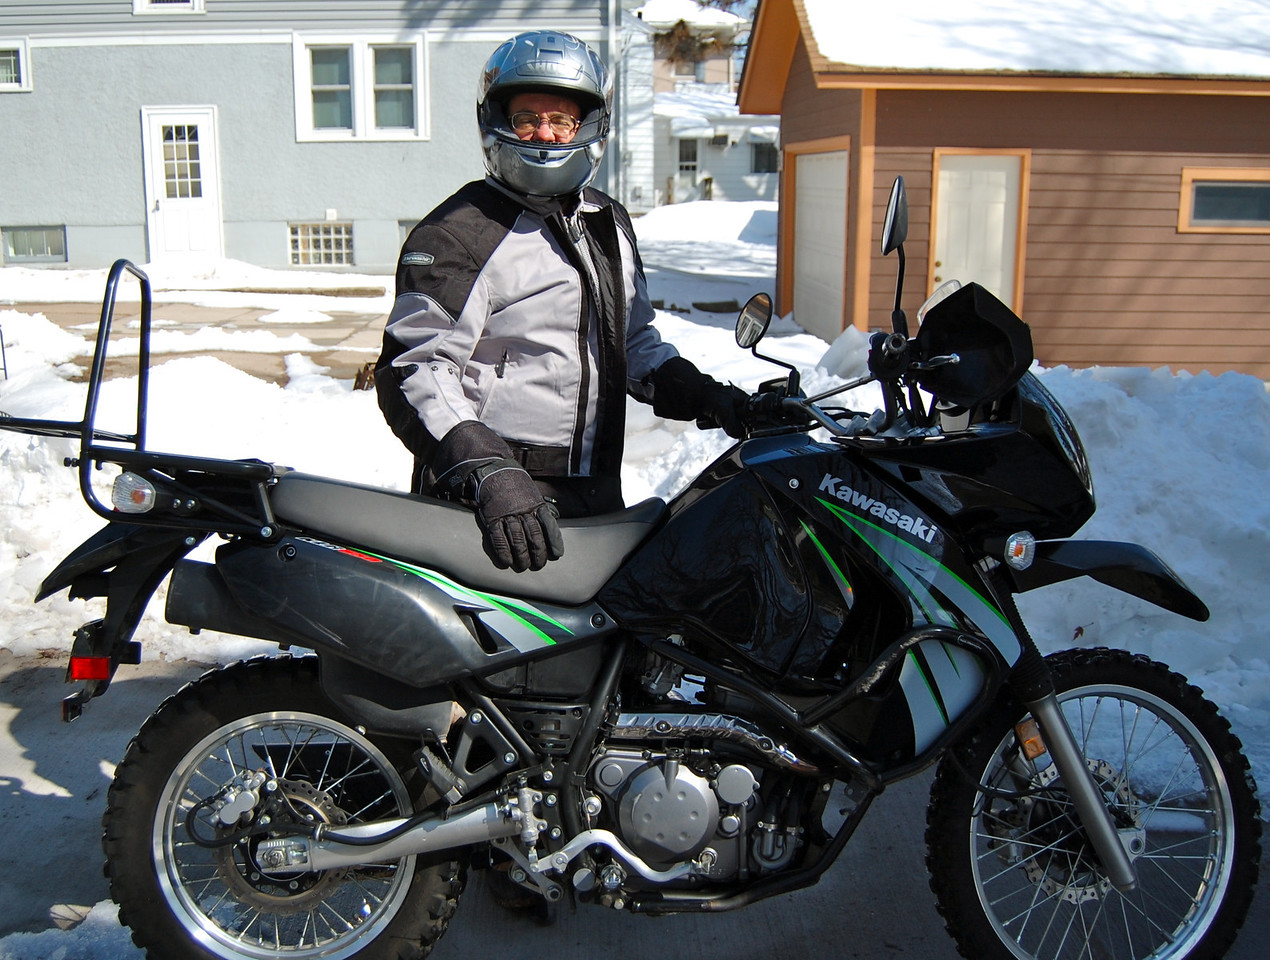 This was the first of our Argentina-bound bikes - a 2009 Kawasaki KLR650 with about 3K for about $3500. This purchase was made in March of 2011 and then we found a second KLR with about the same mileage and price about three months  later. Both bikes were basically stock but we sold off some parts we later changed - e.g. luggage rack, performance muffler, stock seats, windscreens, and front fenders. -Jay